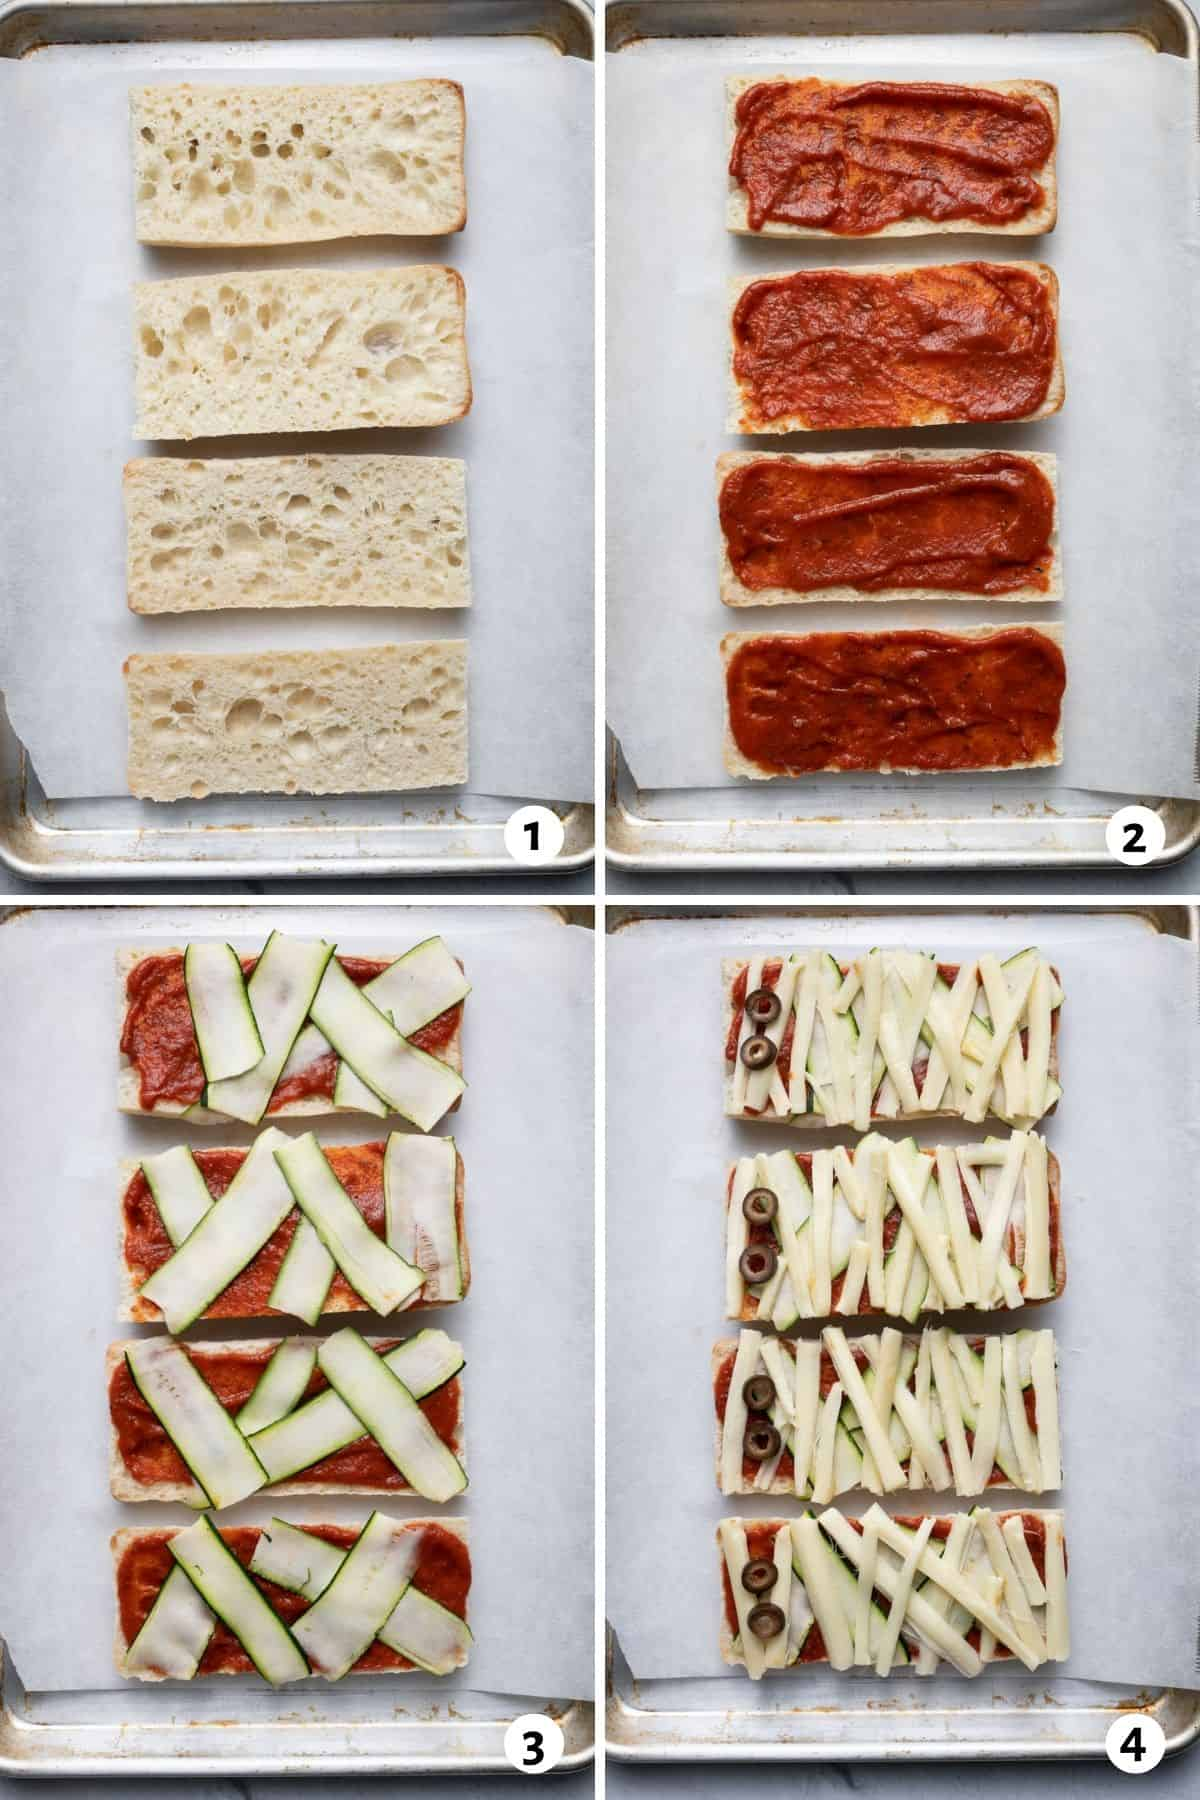 4 image collage to show how to layer the bread to make the pizza